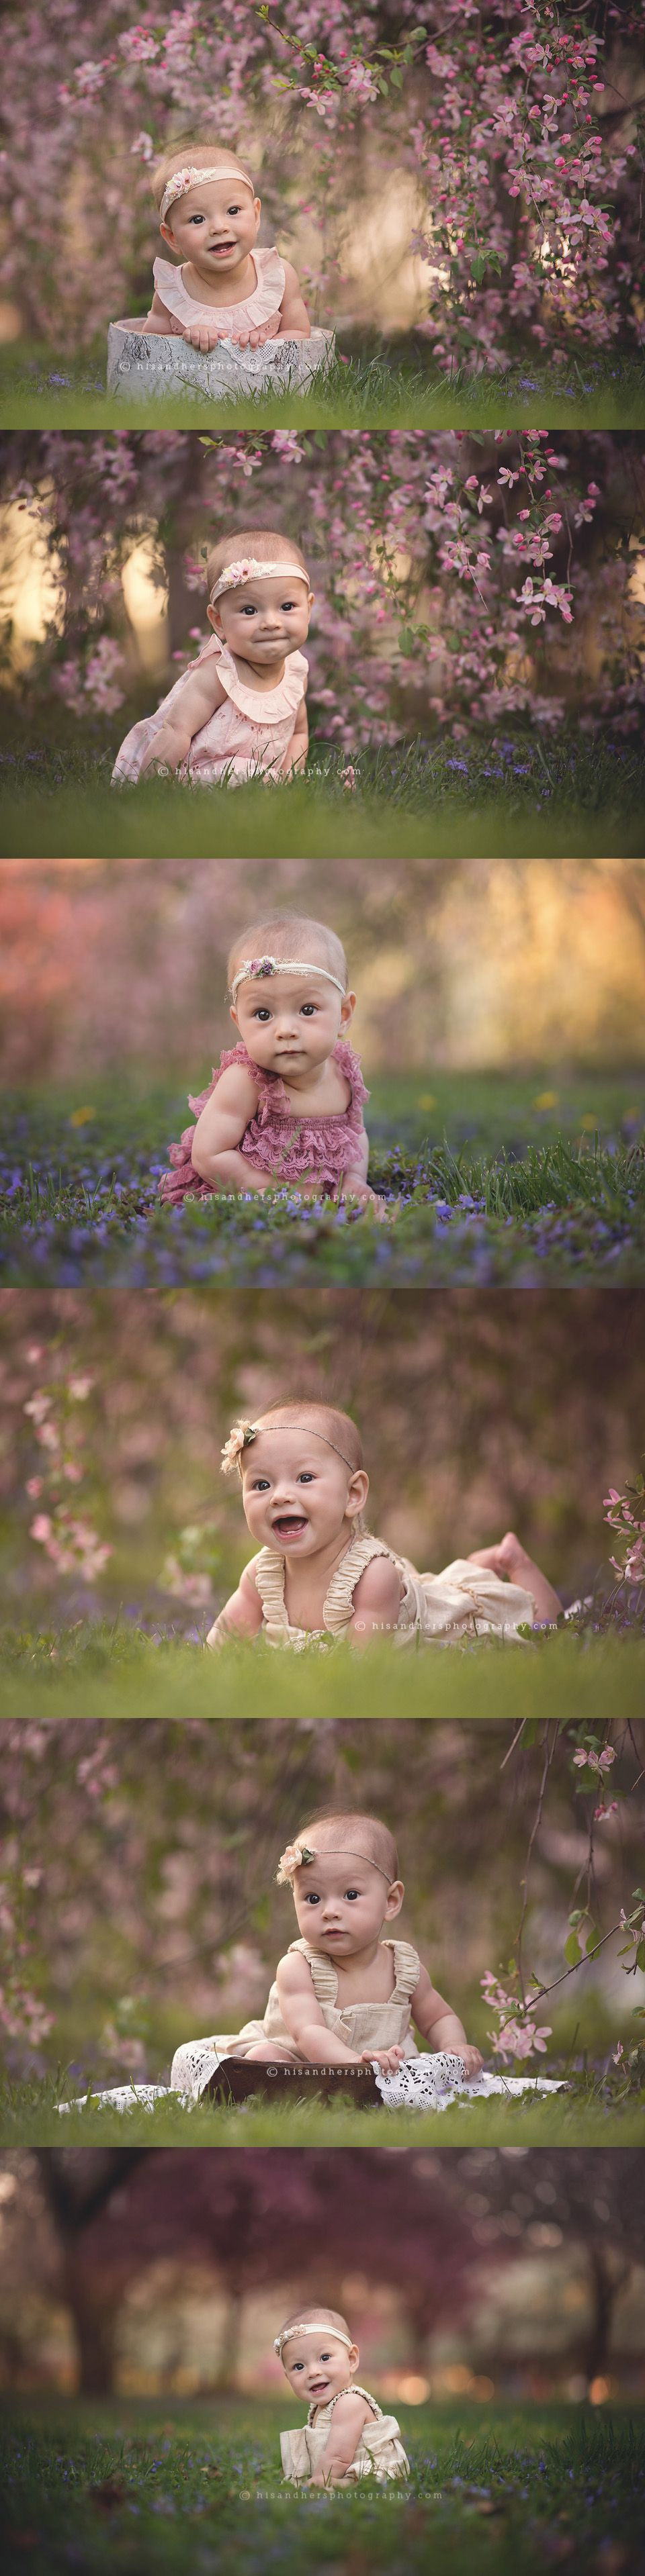 Baby | Elodie, 6 months bloom session